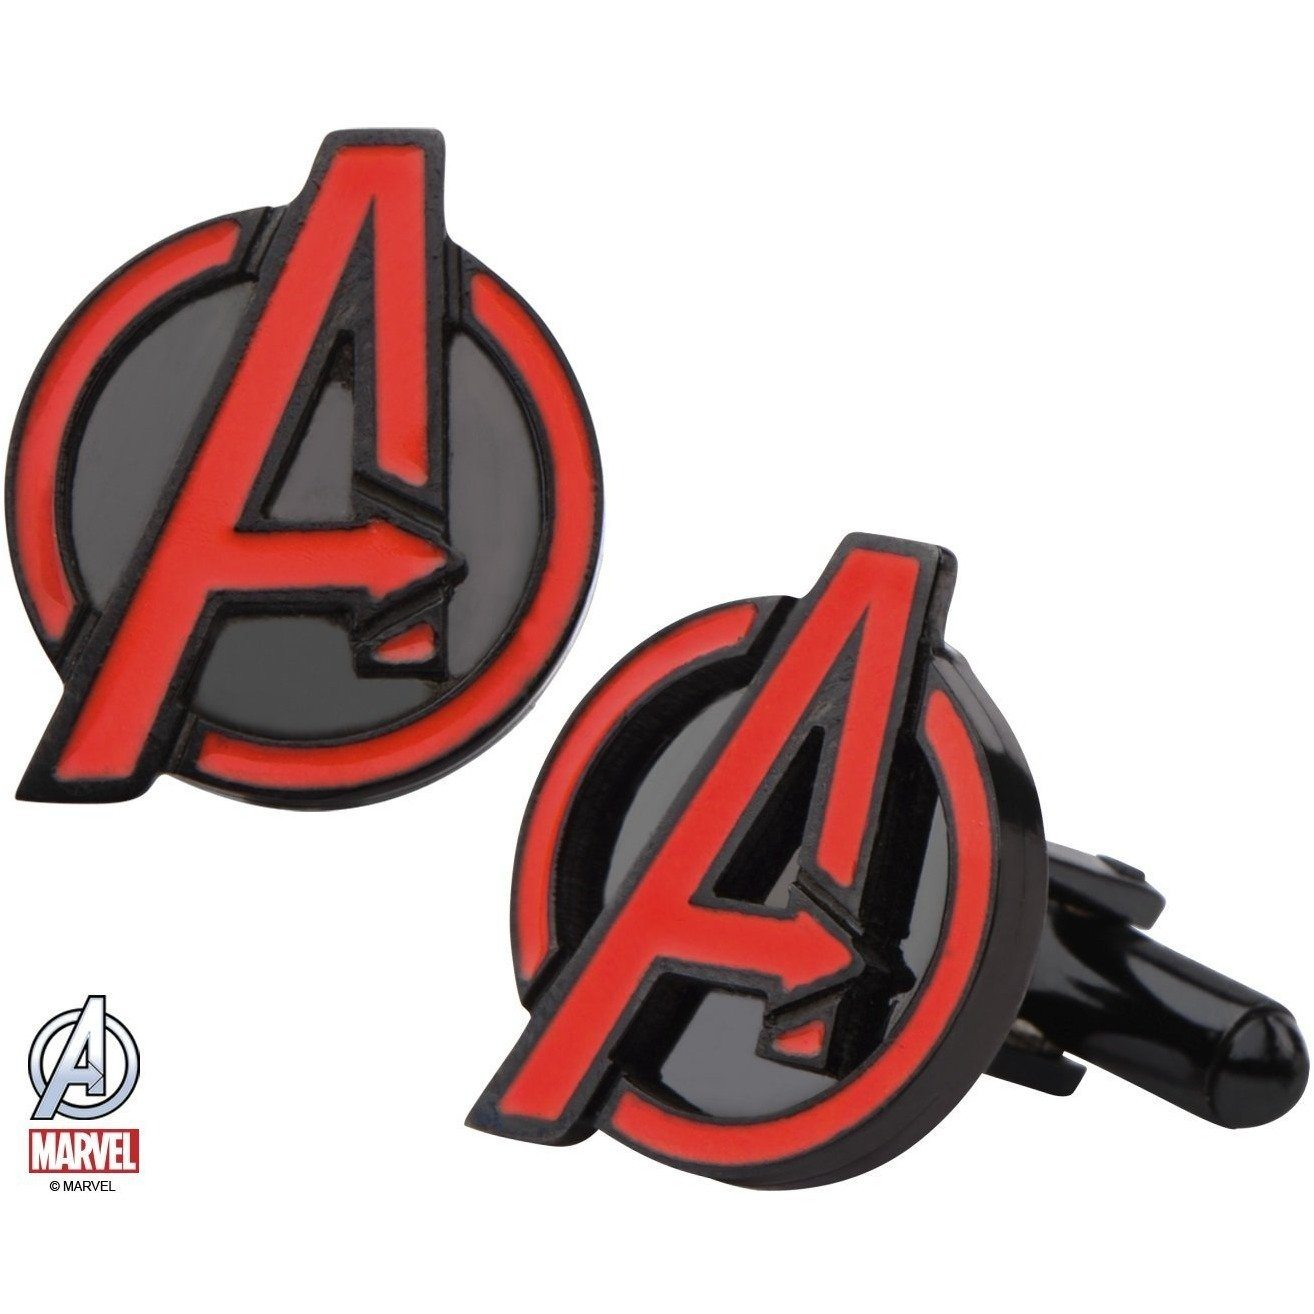 Avengers Insignia Red and Black Cufflinks, Novelty Cufflinks, Cuffed.com.au, CL5851, $65.00